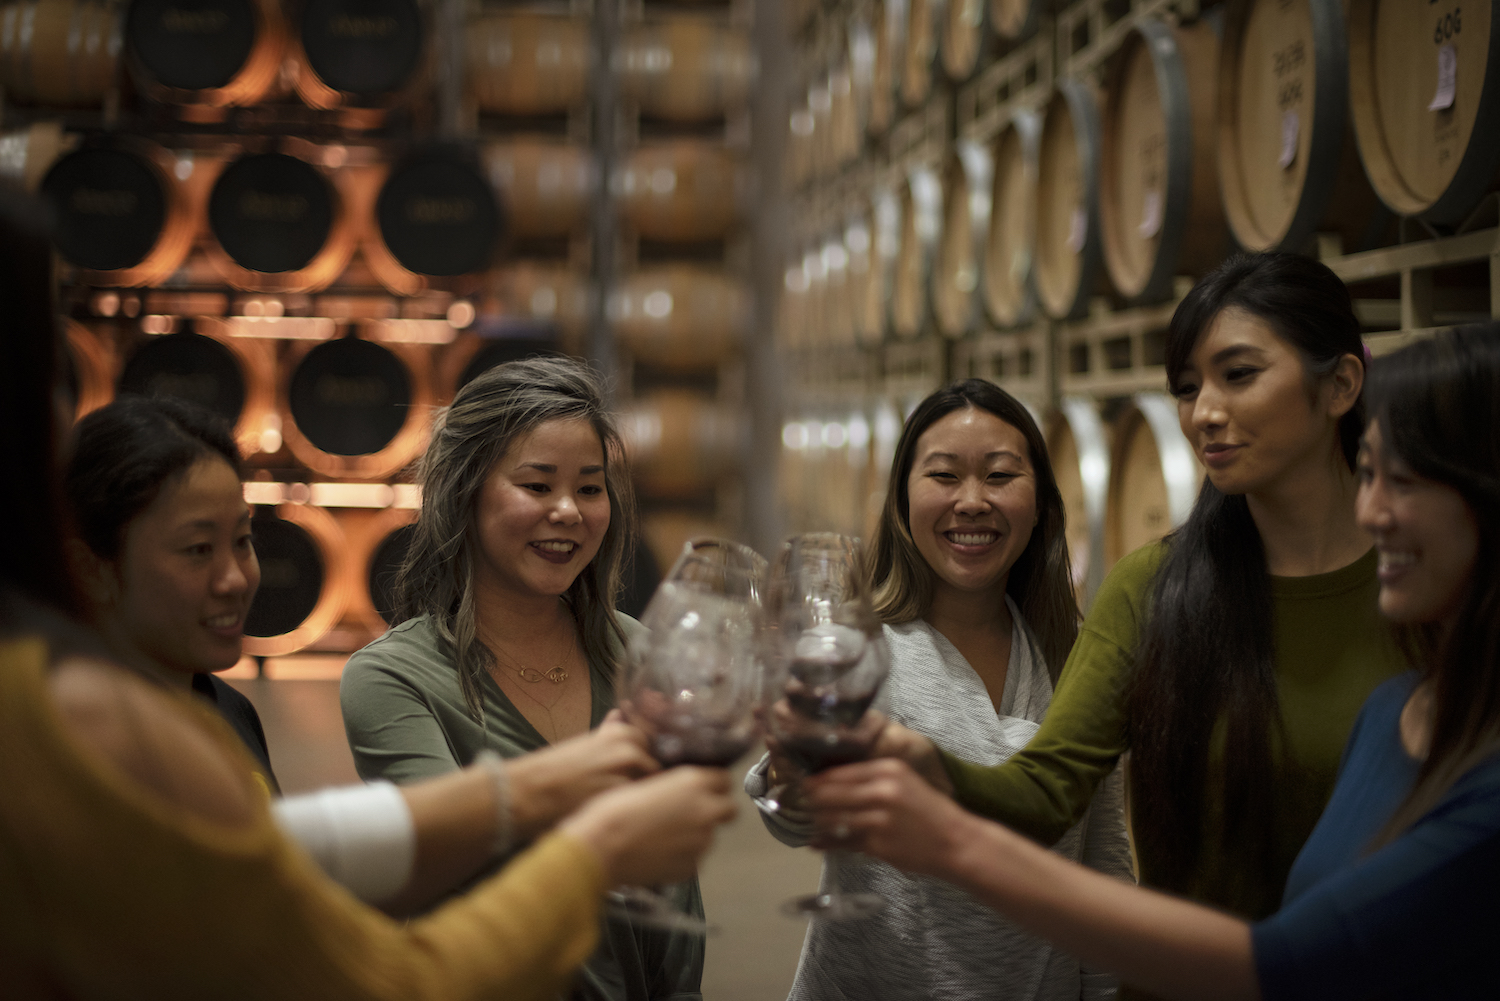 Barrel, barrel tasting, wine tasting, barrel tasting in Napa, what is barrel tasting, wine, Napa, Sonoma, Wine Country, wineries, tasting rooms, The Press